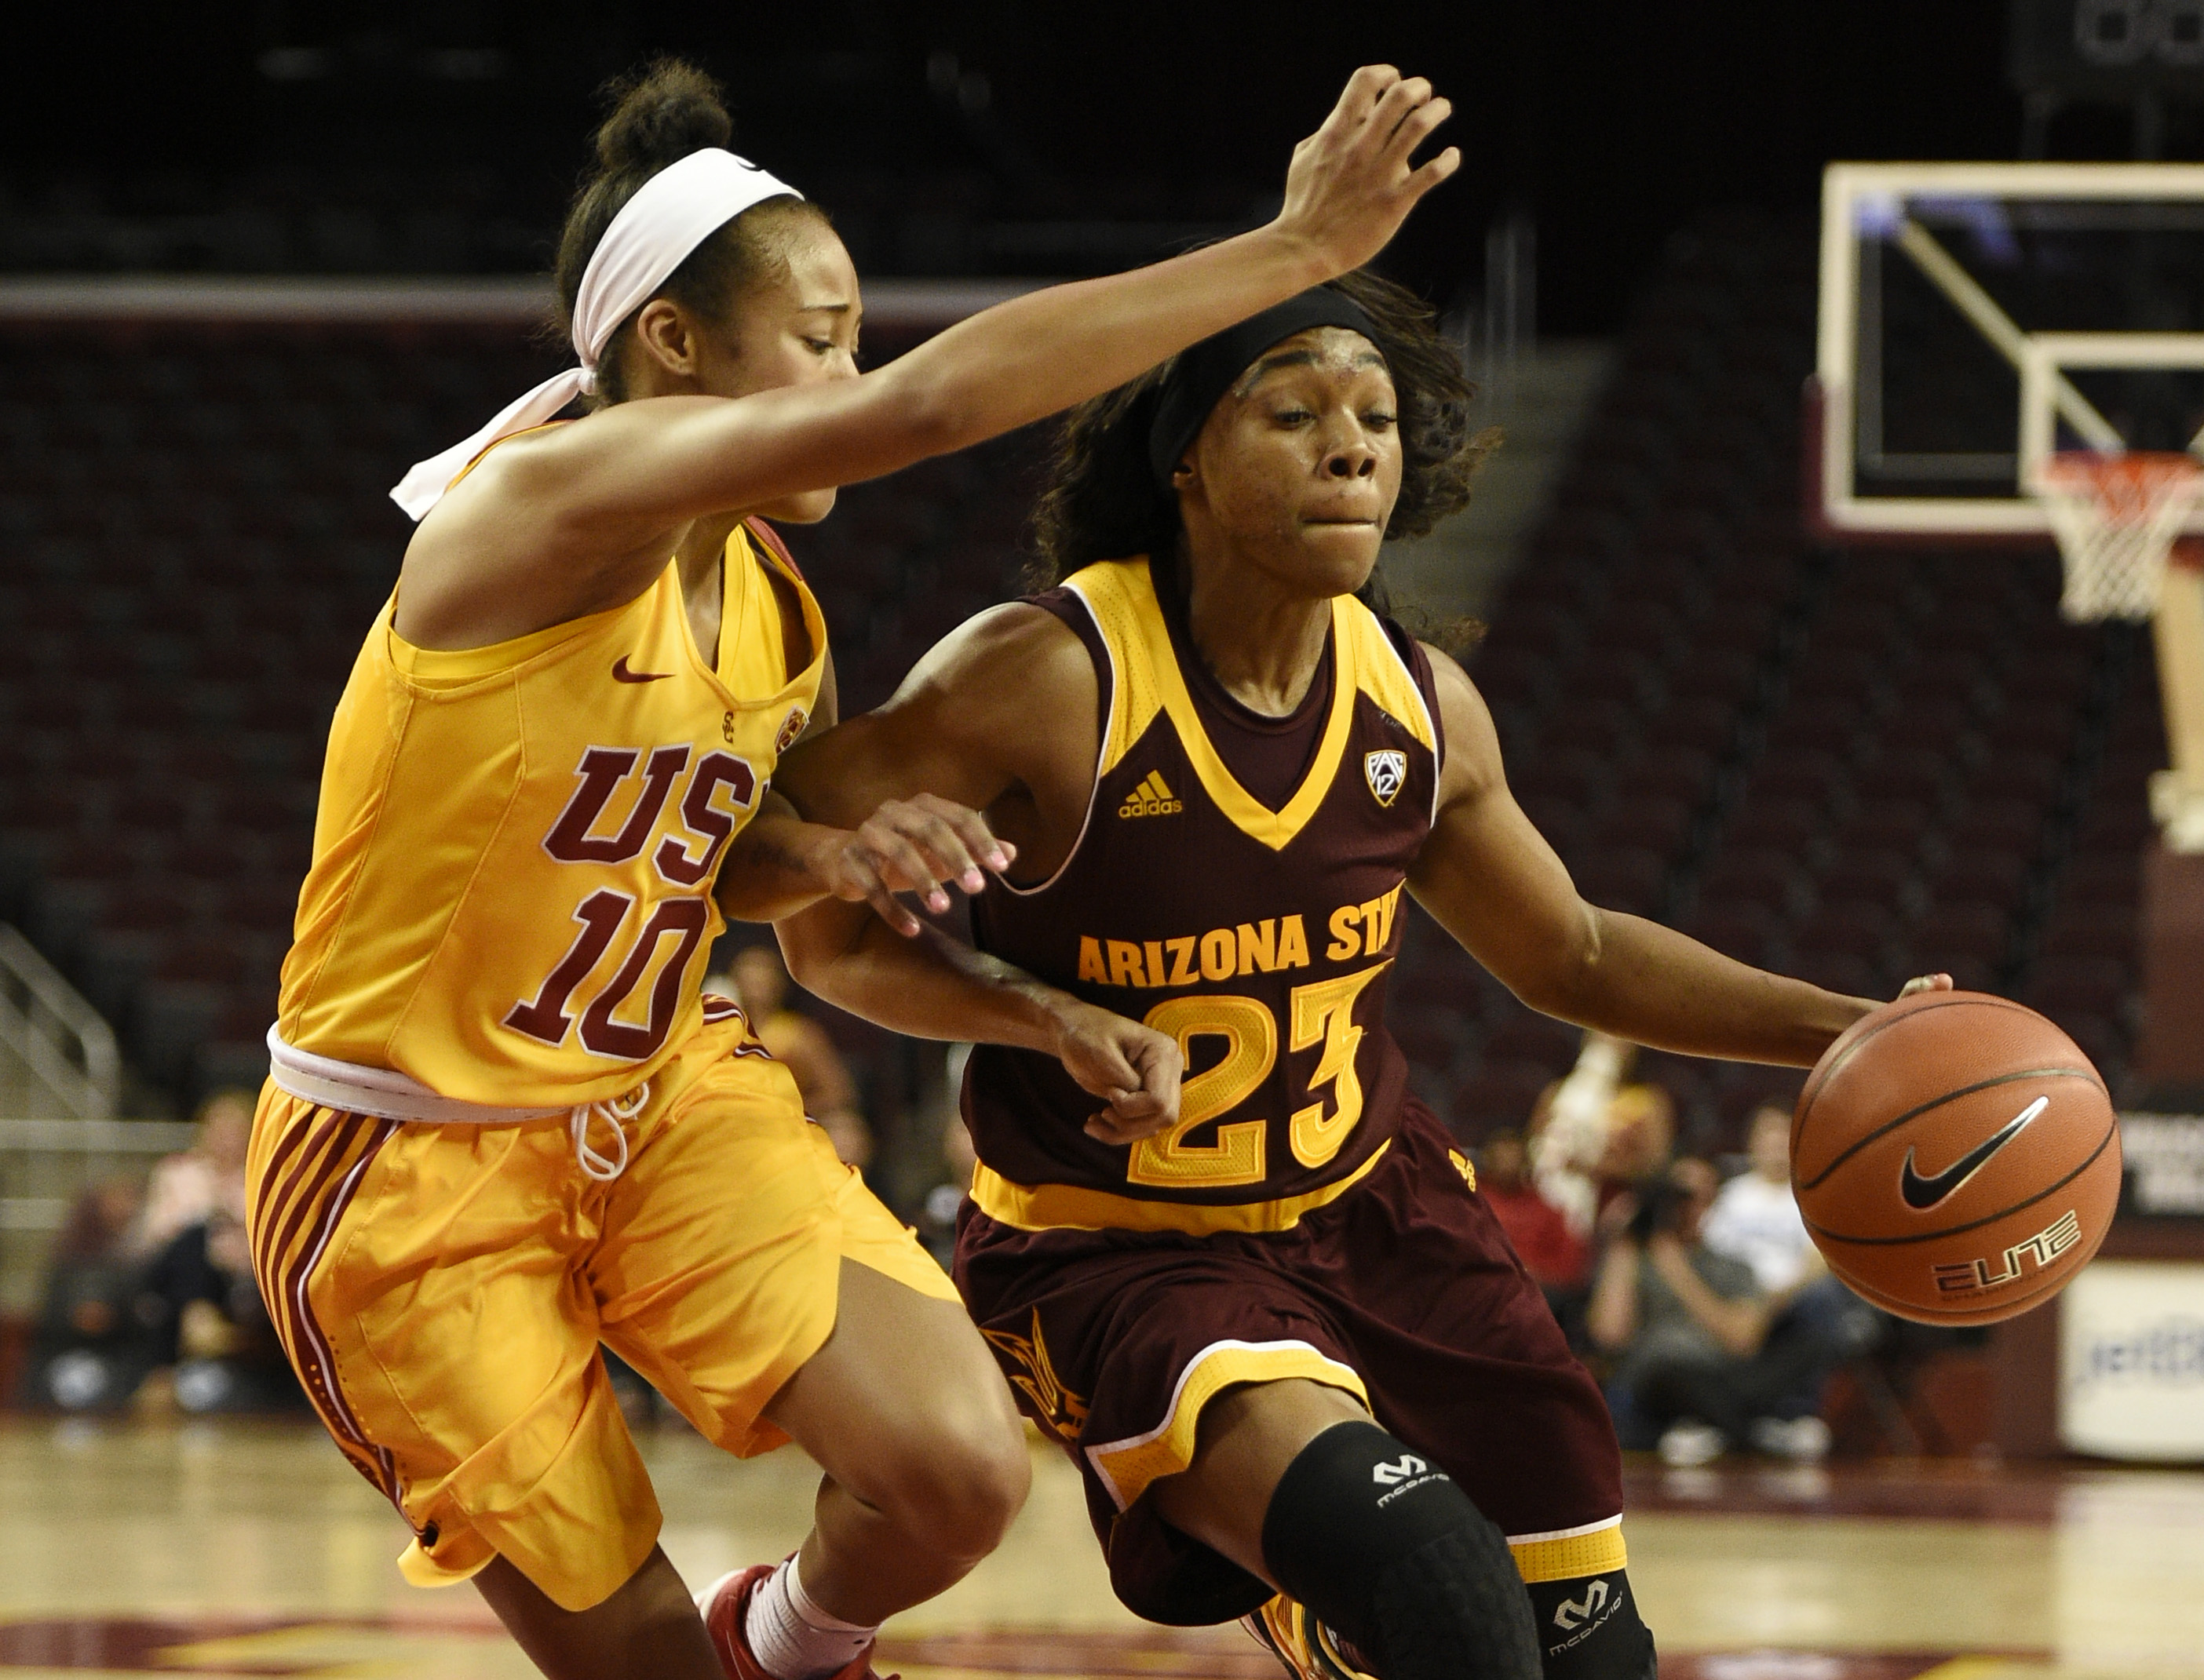 Arizona State guard Elisha Davis, right, drives the ball as Southern California guard Courtney Jaco defends during the first quarter of an NCAA college basketball game in Los Angeles, Friday, Feb. 26, 2016. (AP Photo/Kelvin Kuo)